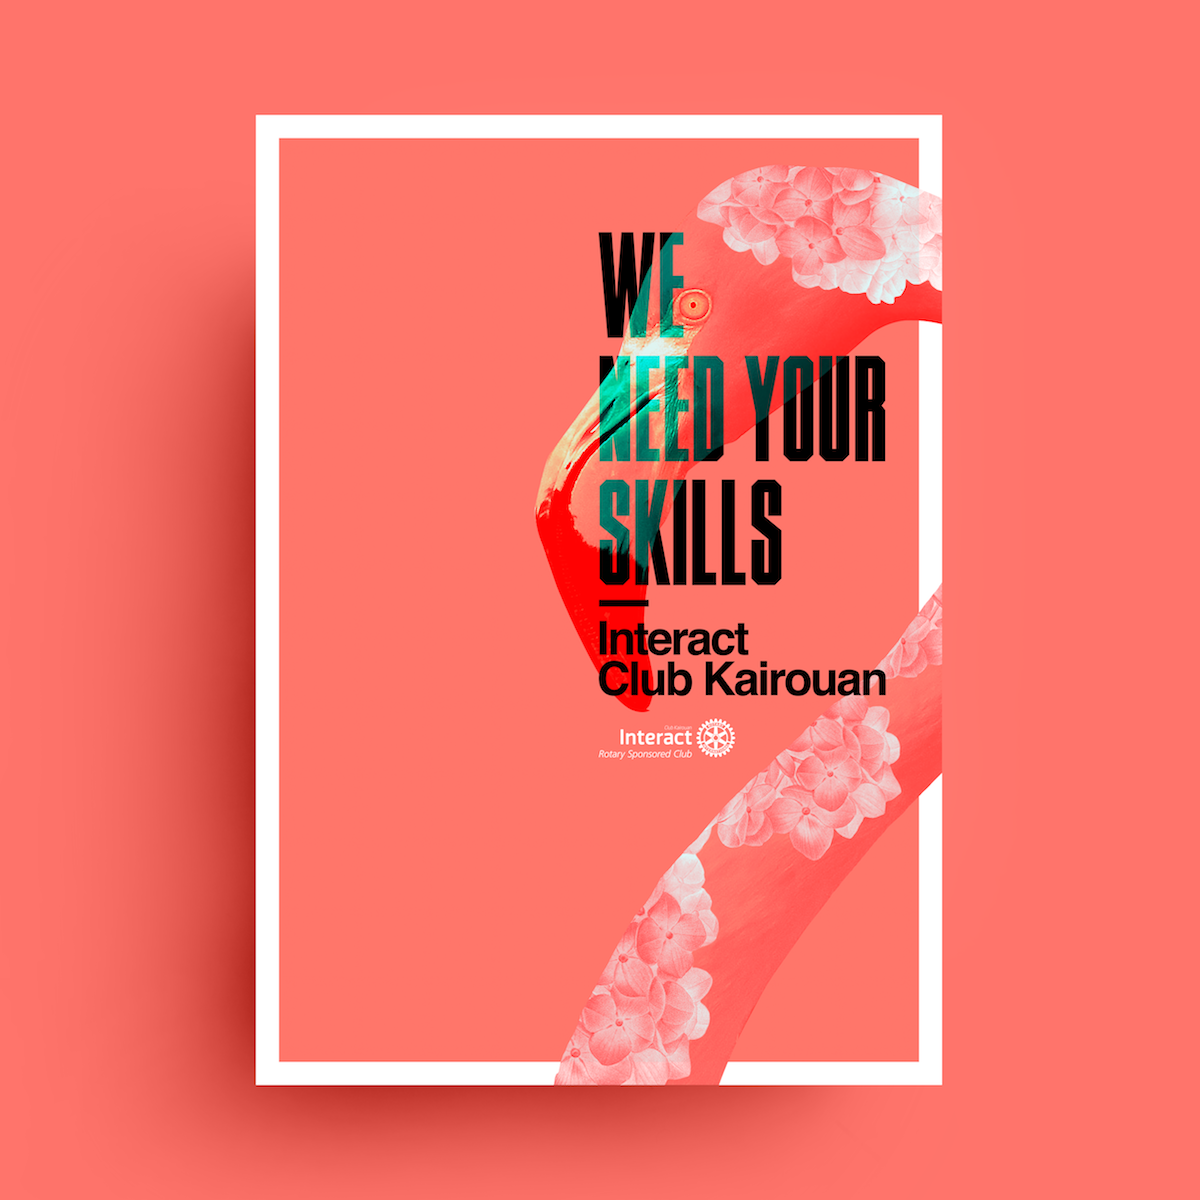 Graphic Design Inspiration: 8 Creative Poster Inspiration, Examples & Templates